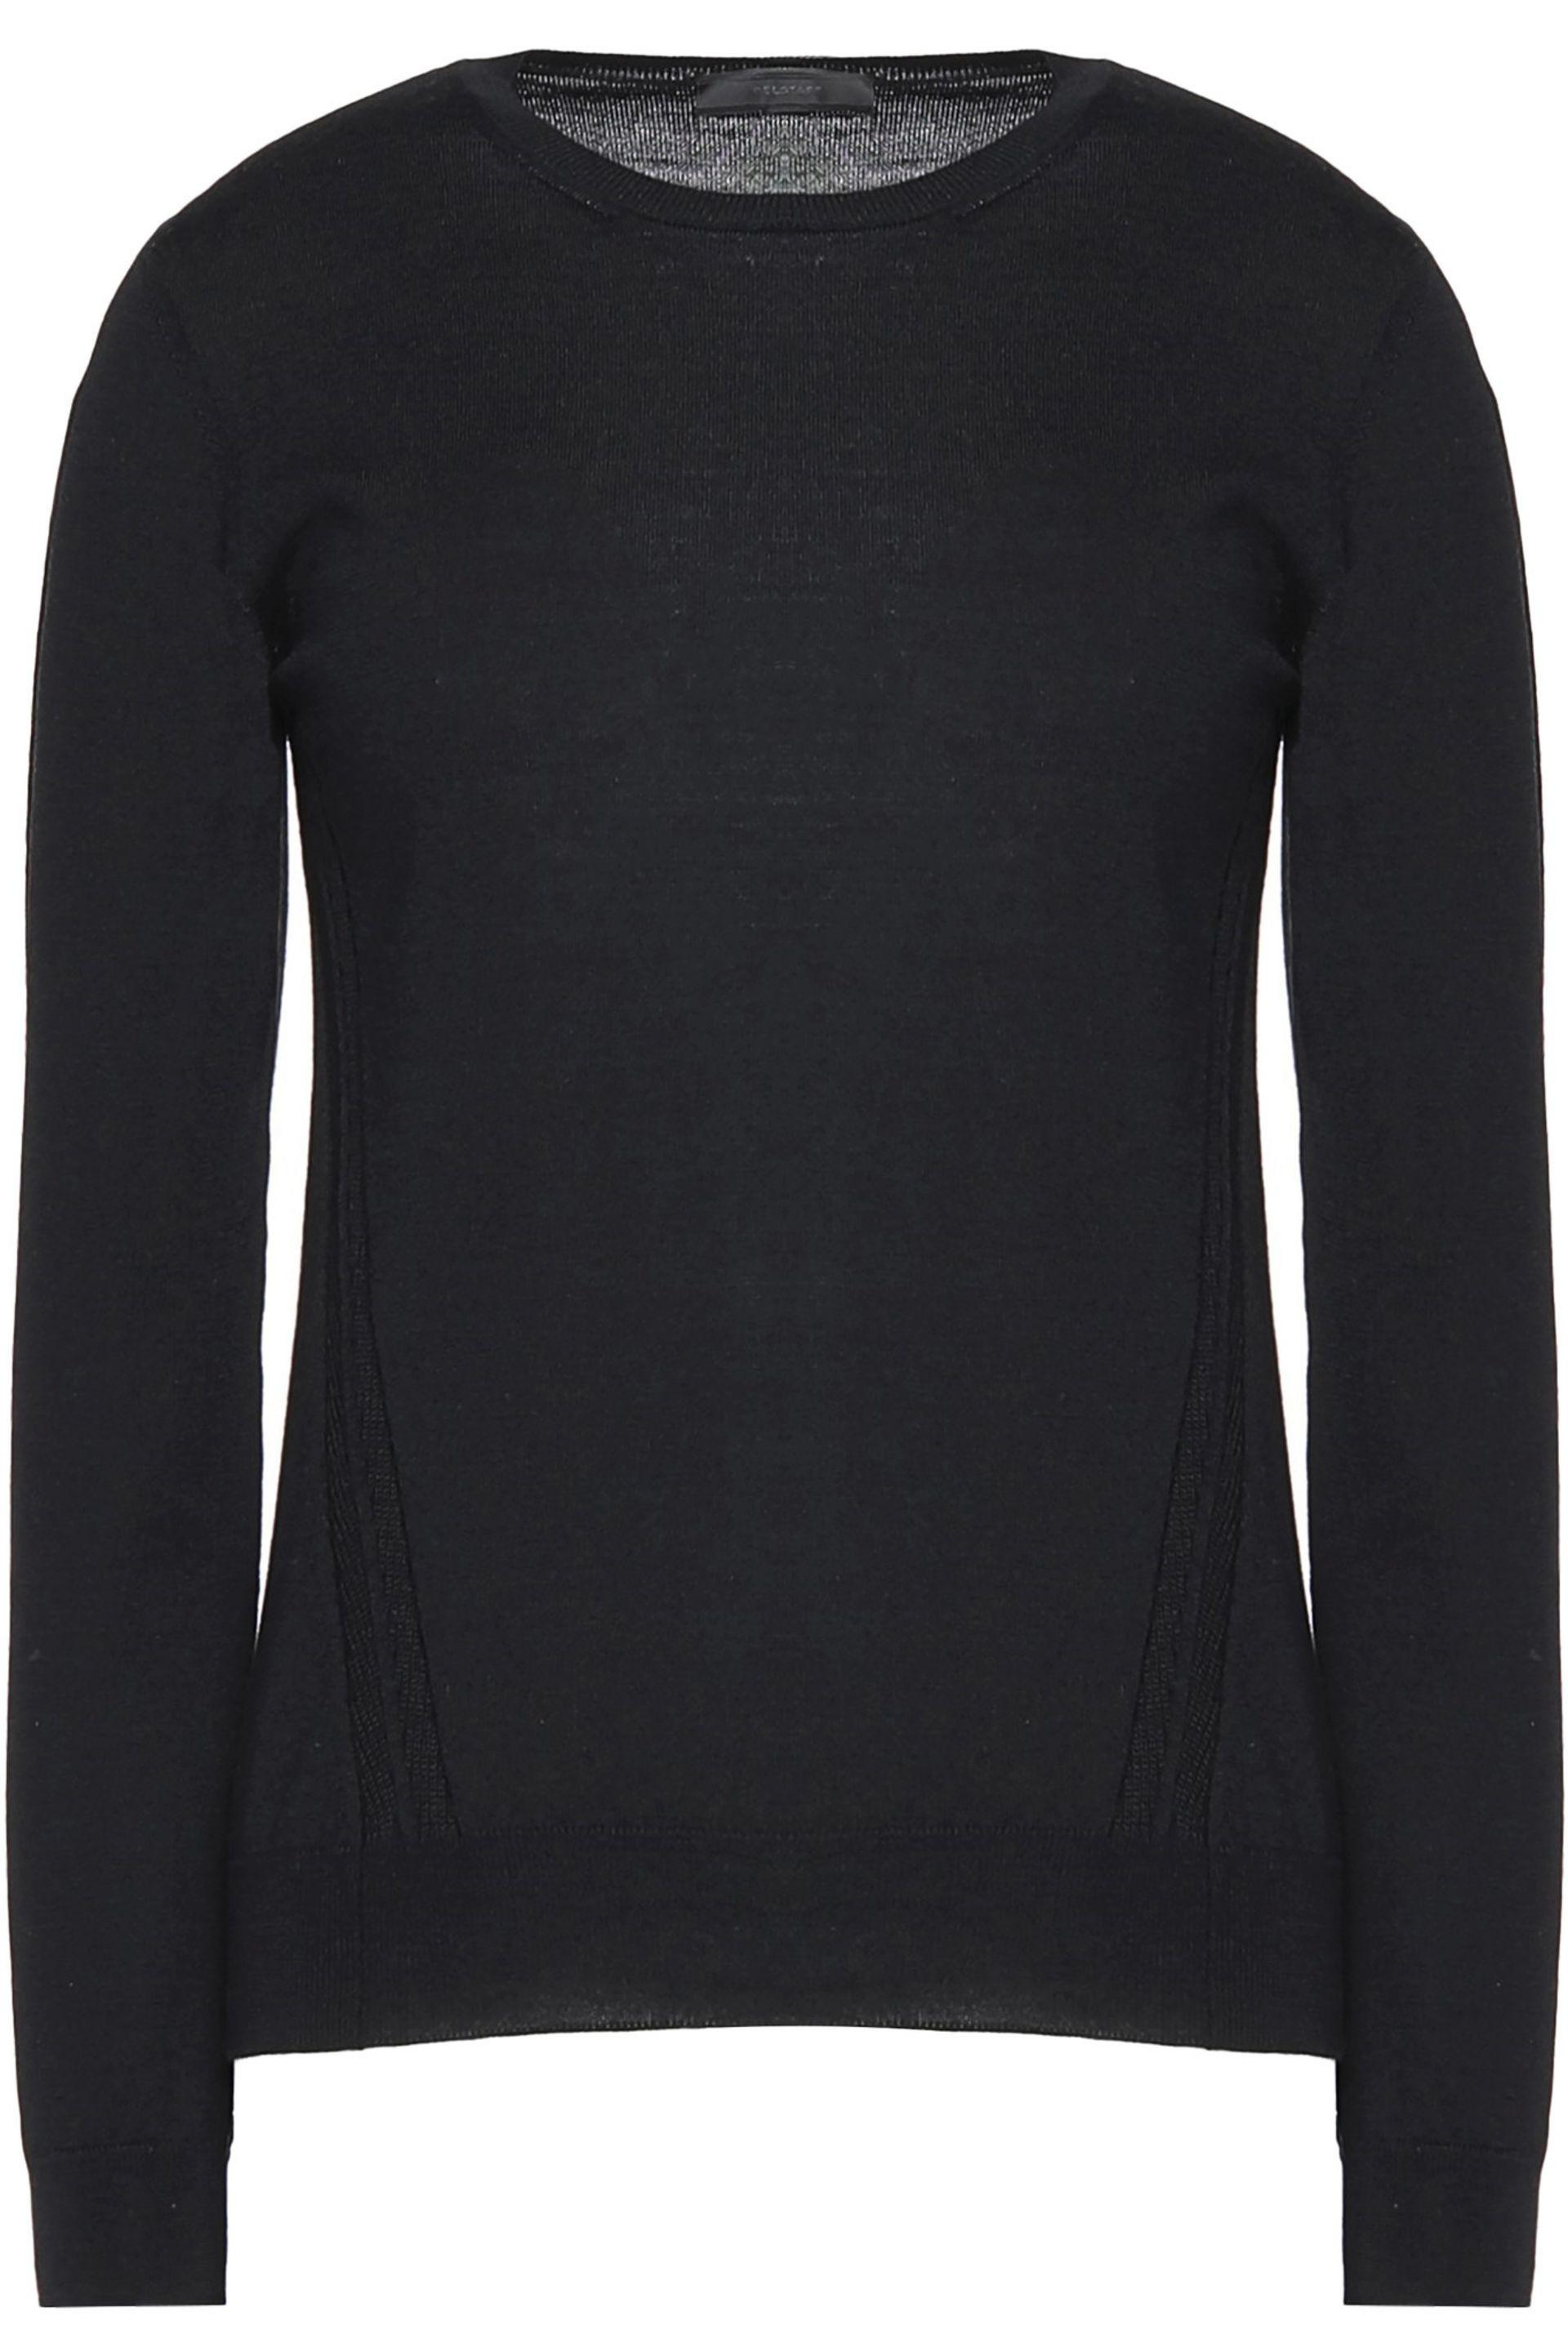 Belstaff Woman Cable Knit-trimmed Cashmere, Wool And Silk-blend Sweater Midnight Blue Size M Belstaff